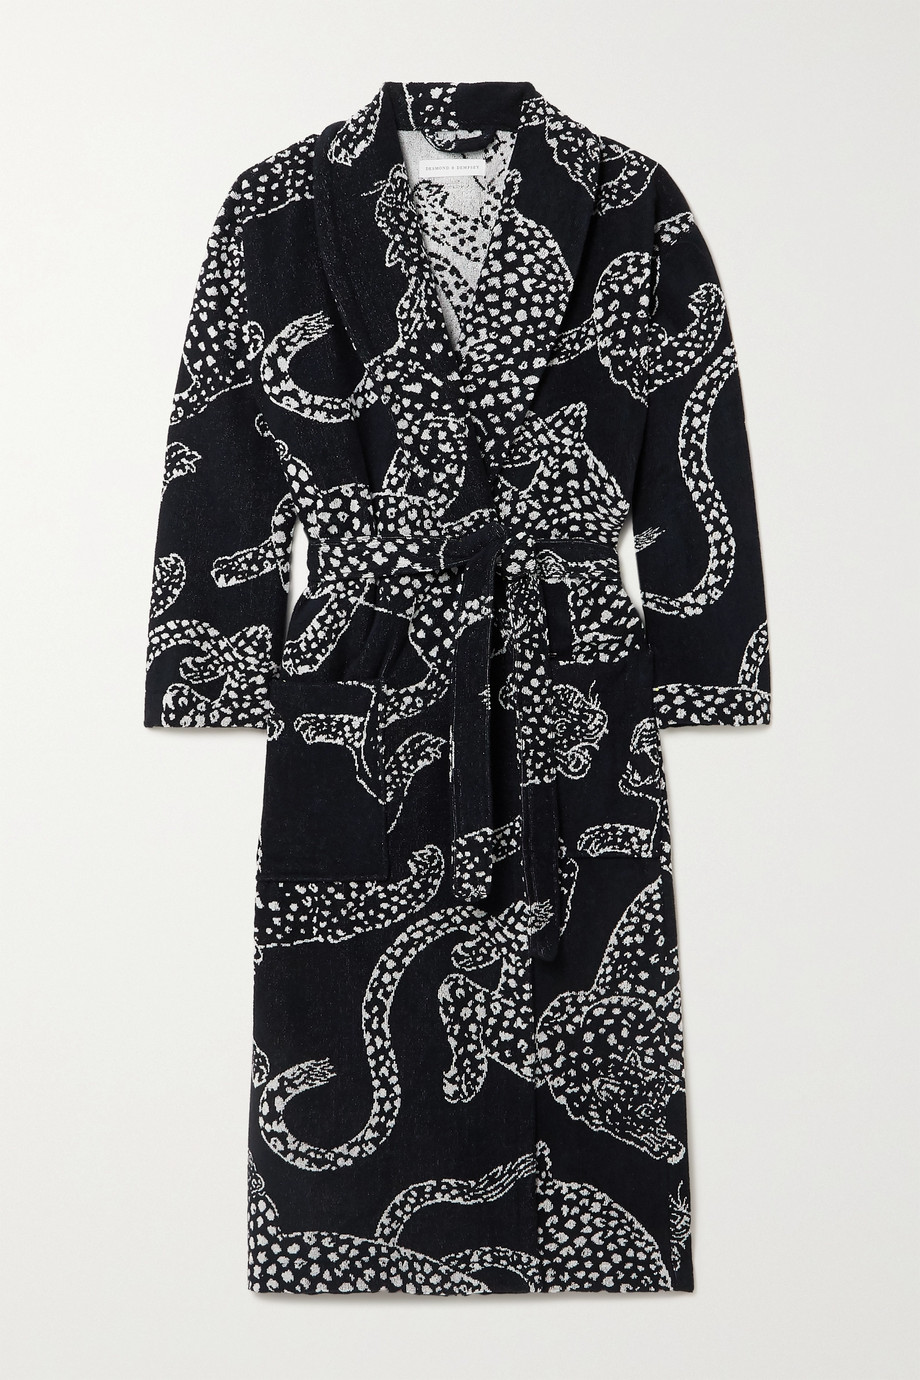 Desmond & Dempsey Belted cotton-terry jacquard robe